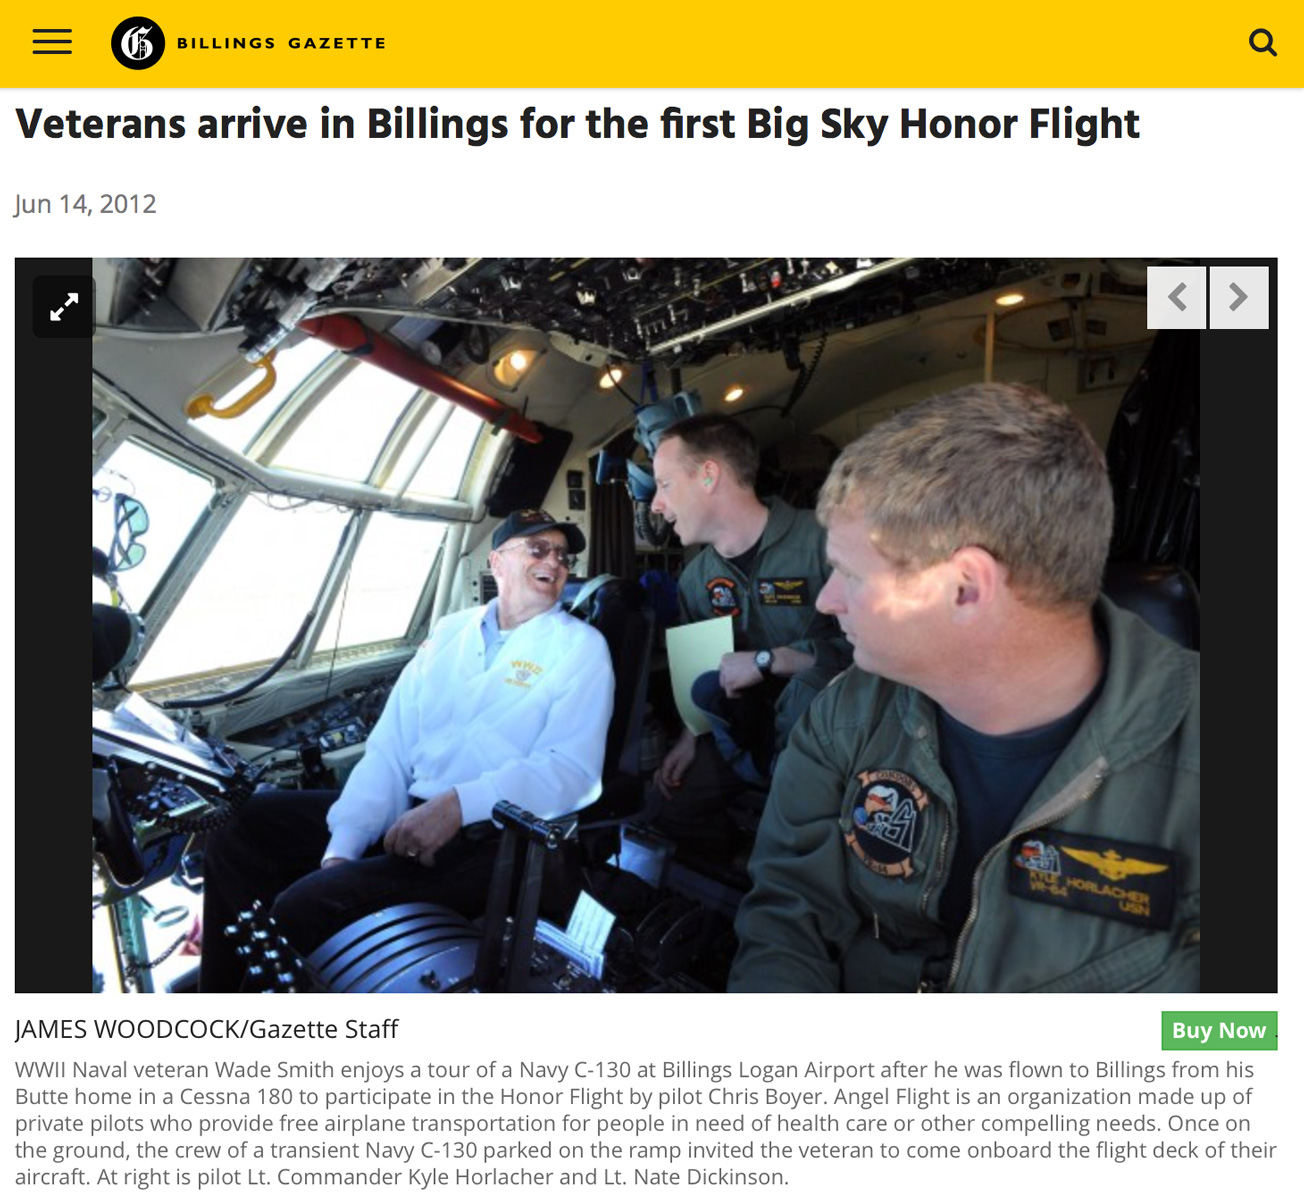 Billings Gazette Article on Big Sky Honor Flight